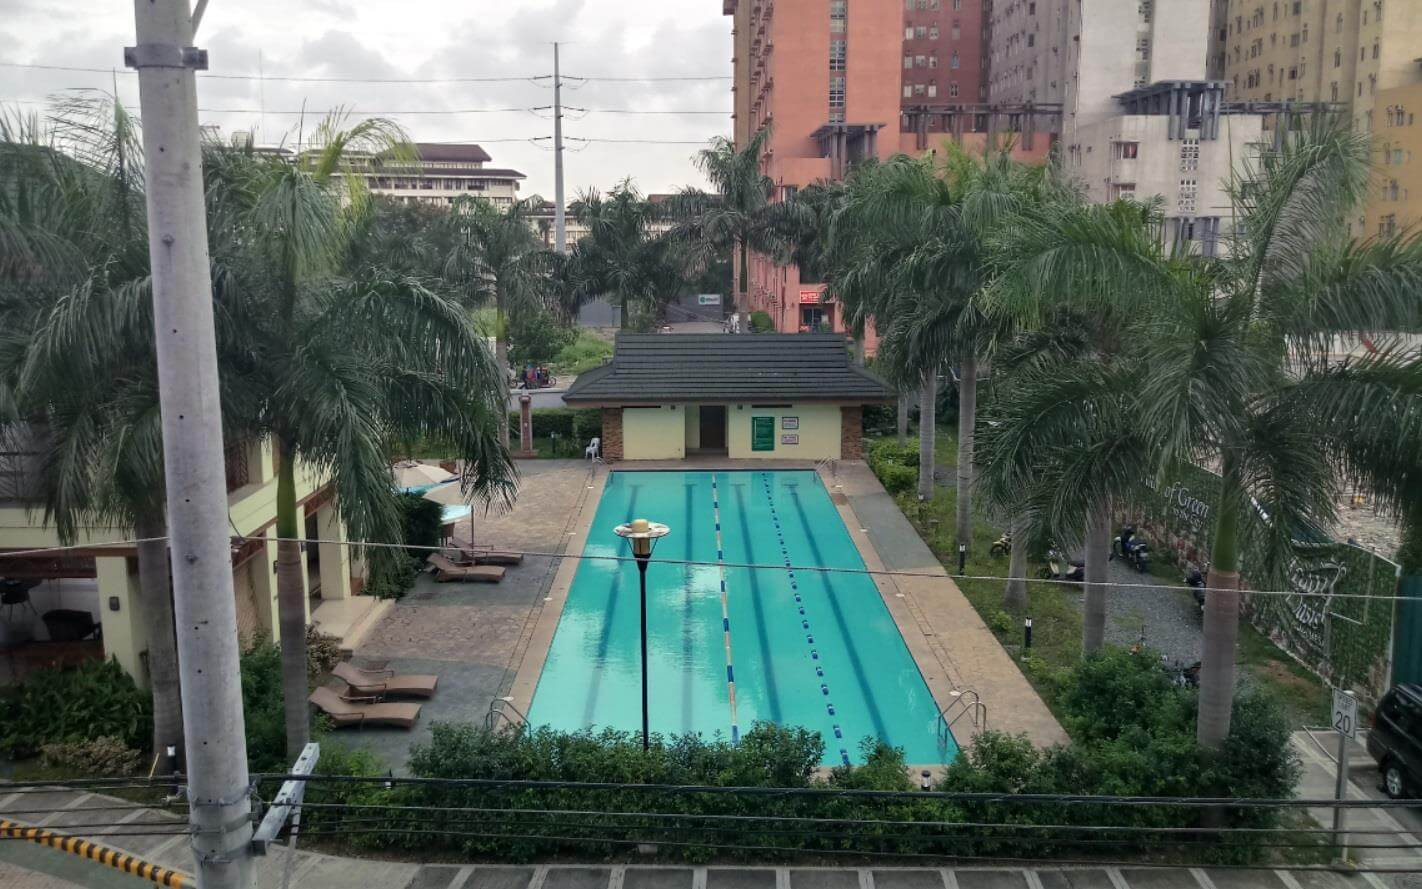 LG Stylus 3 Review - Rear Camera Sample - Lap Pool (with HDR)